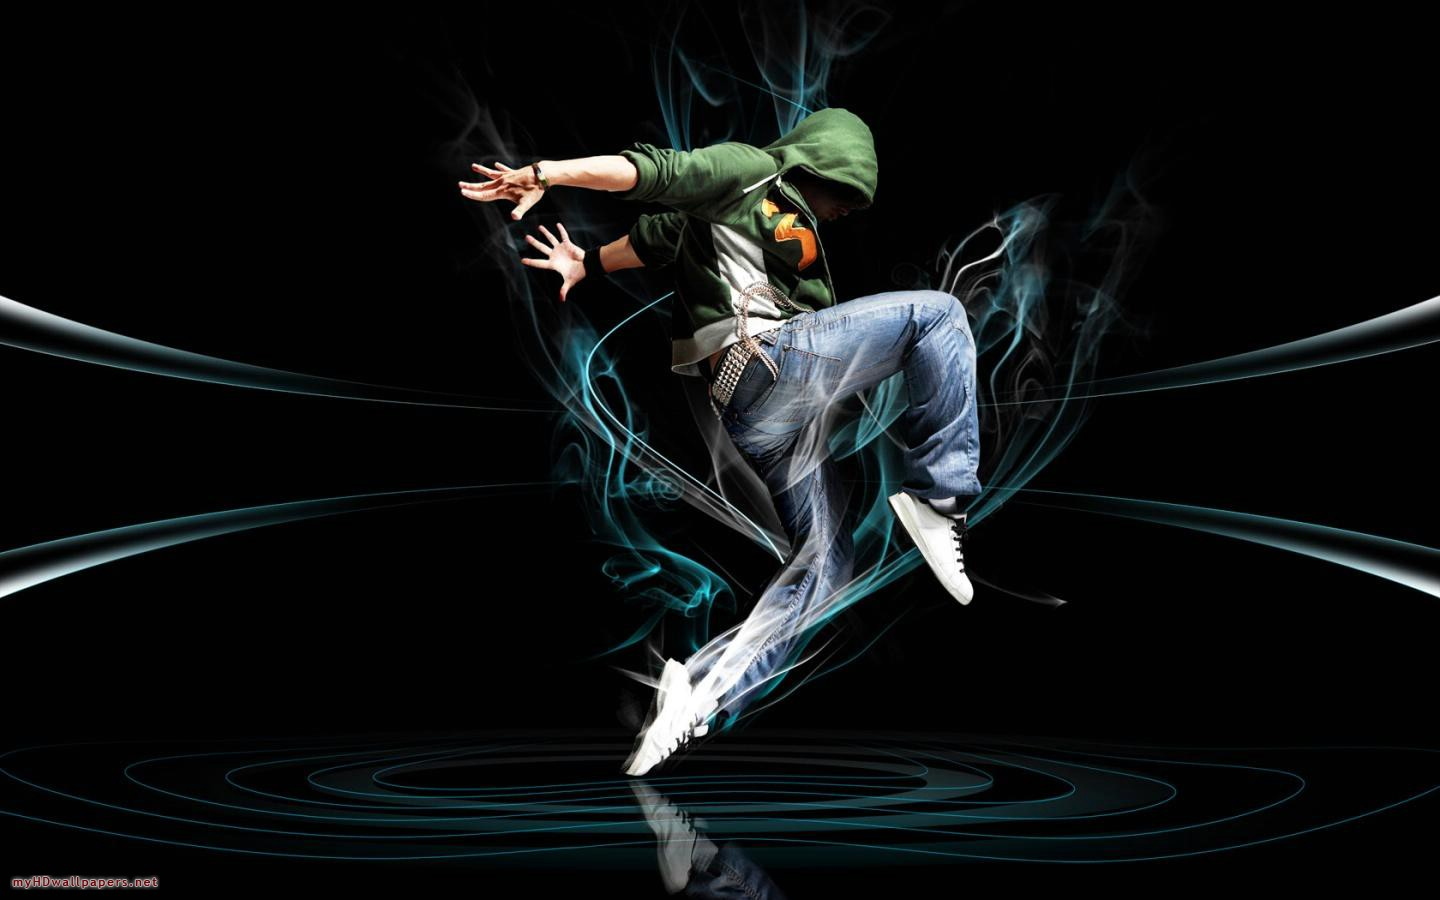 Free Download All Wallpapers Dance Hd Wallpapers 2013